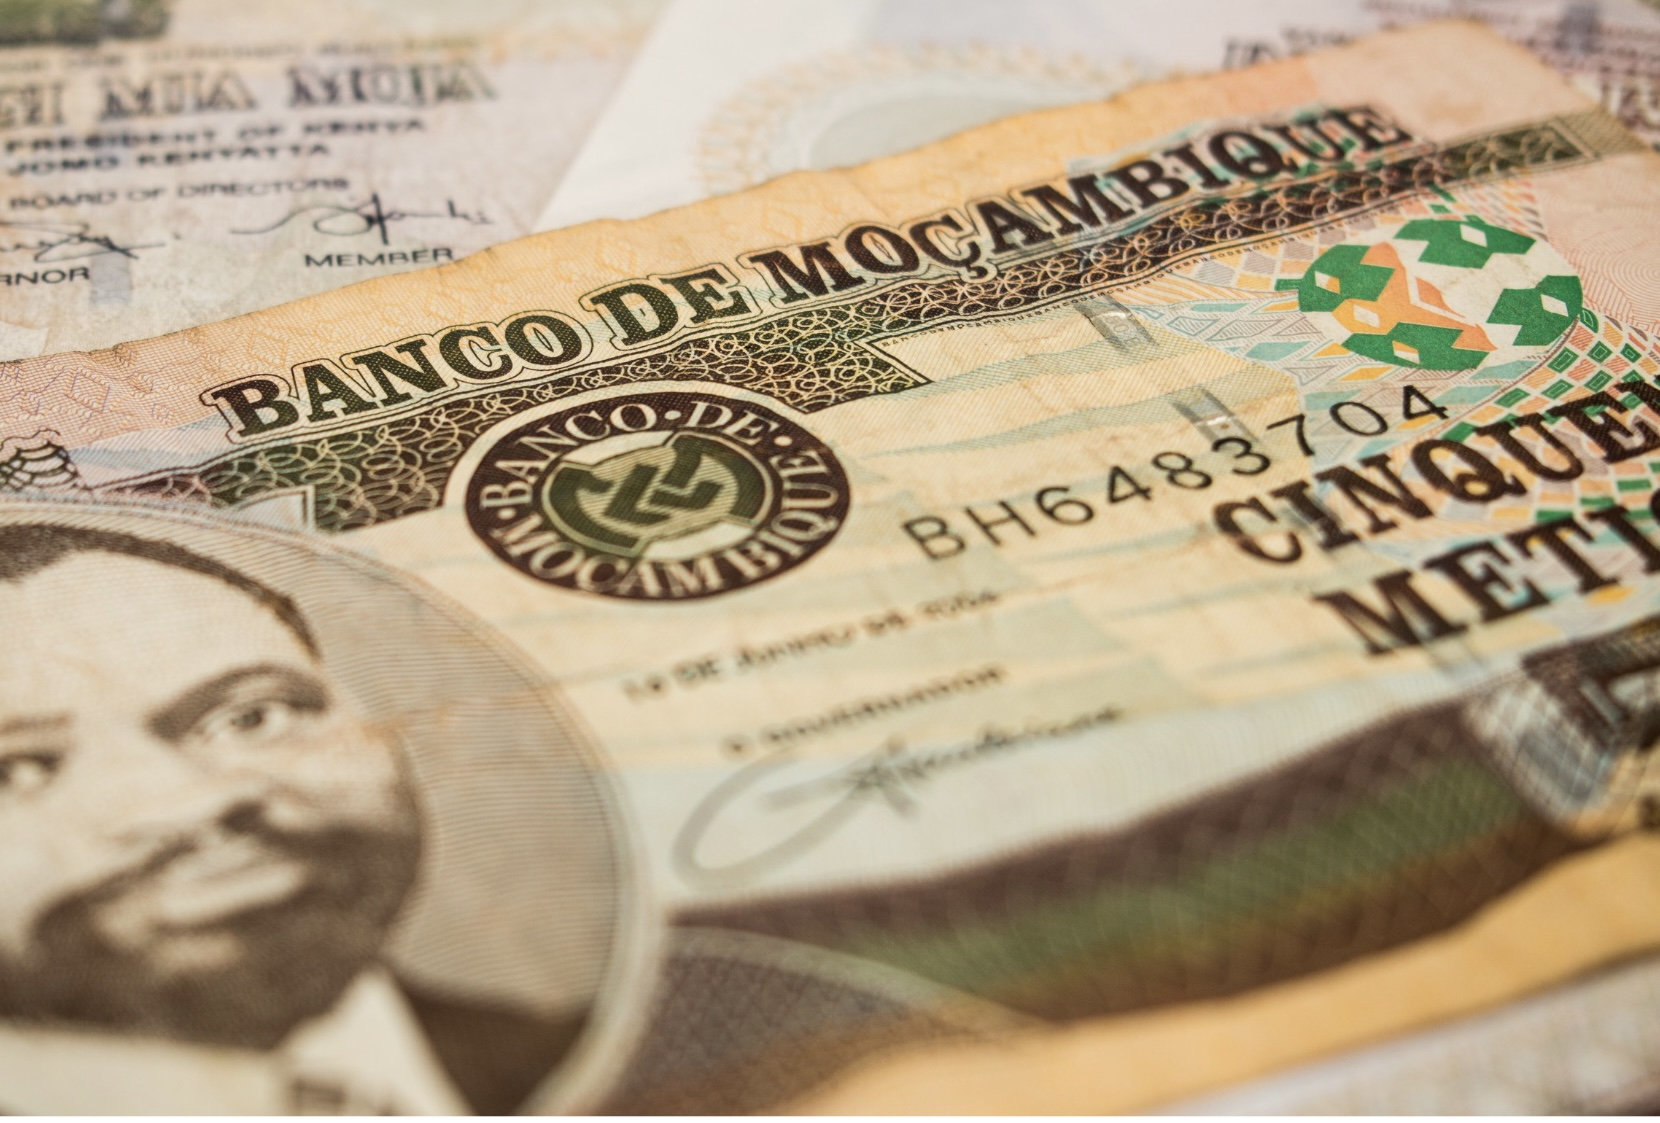 Central Bank of Mozambique issued currency